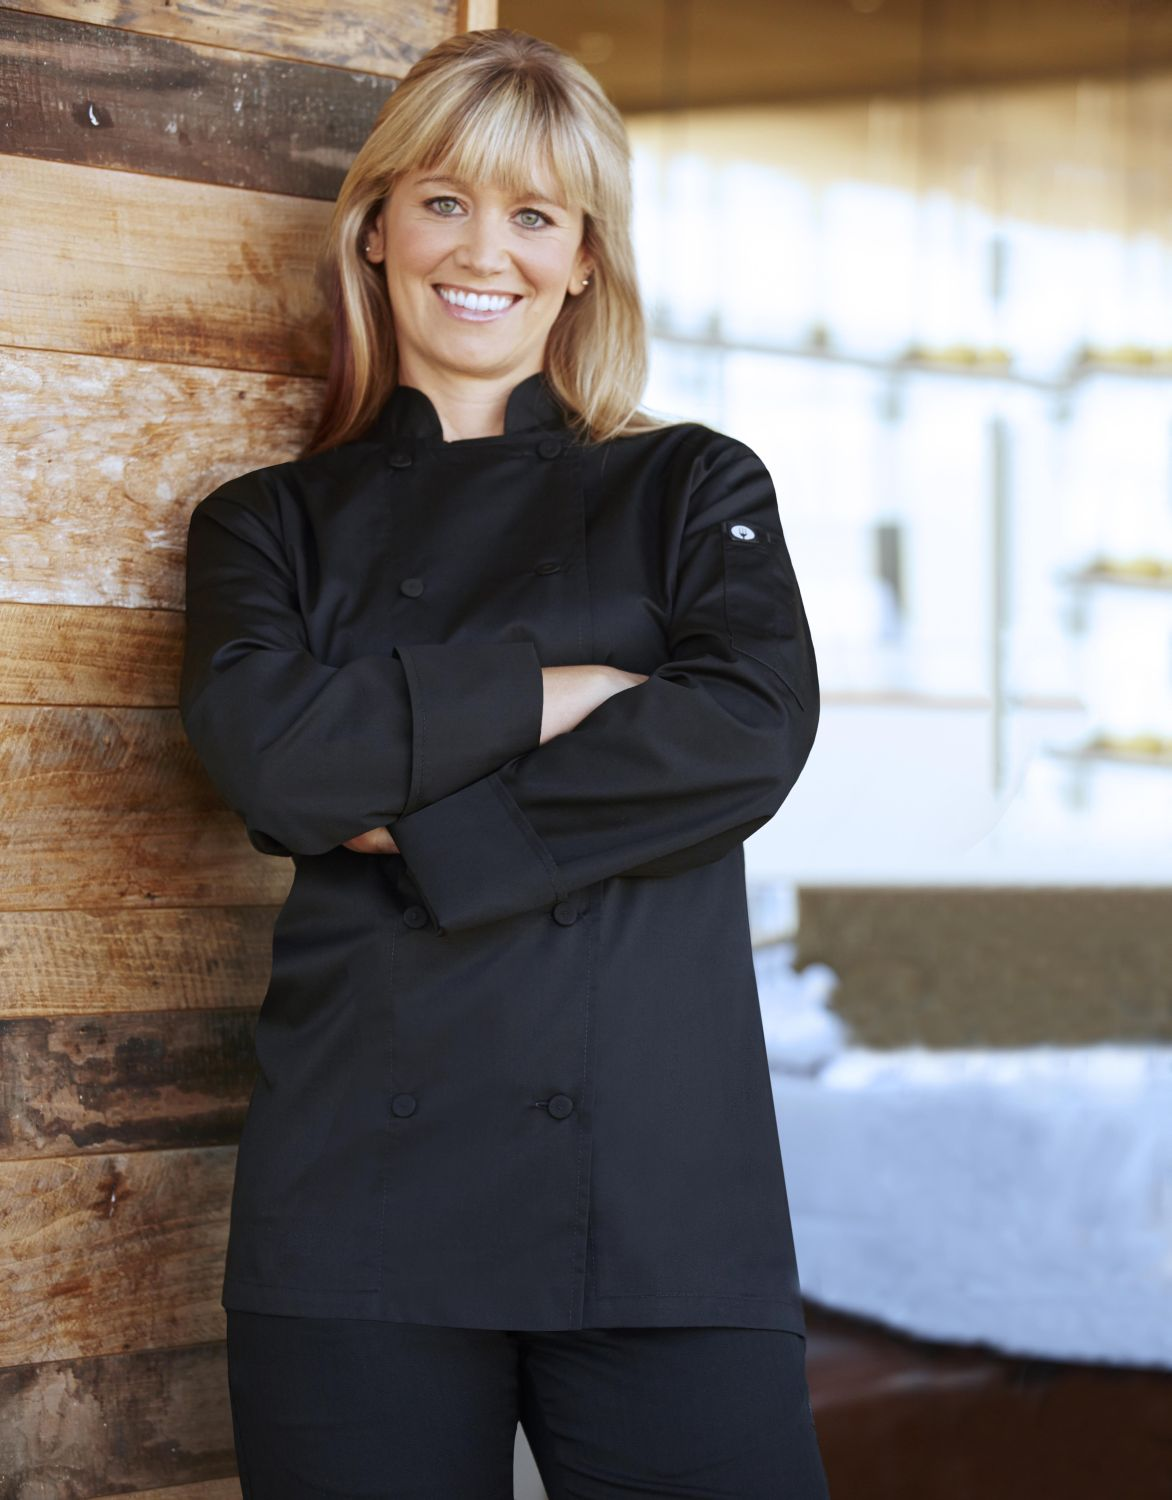 Light Weight Lady Chef Jacket